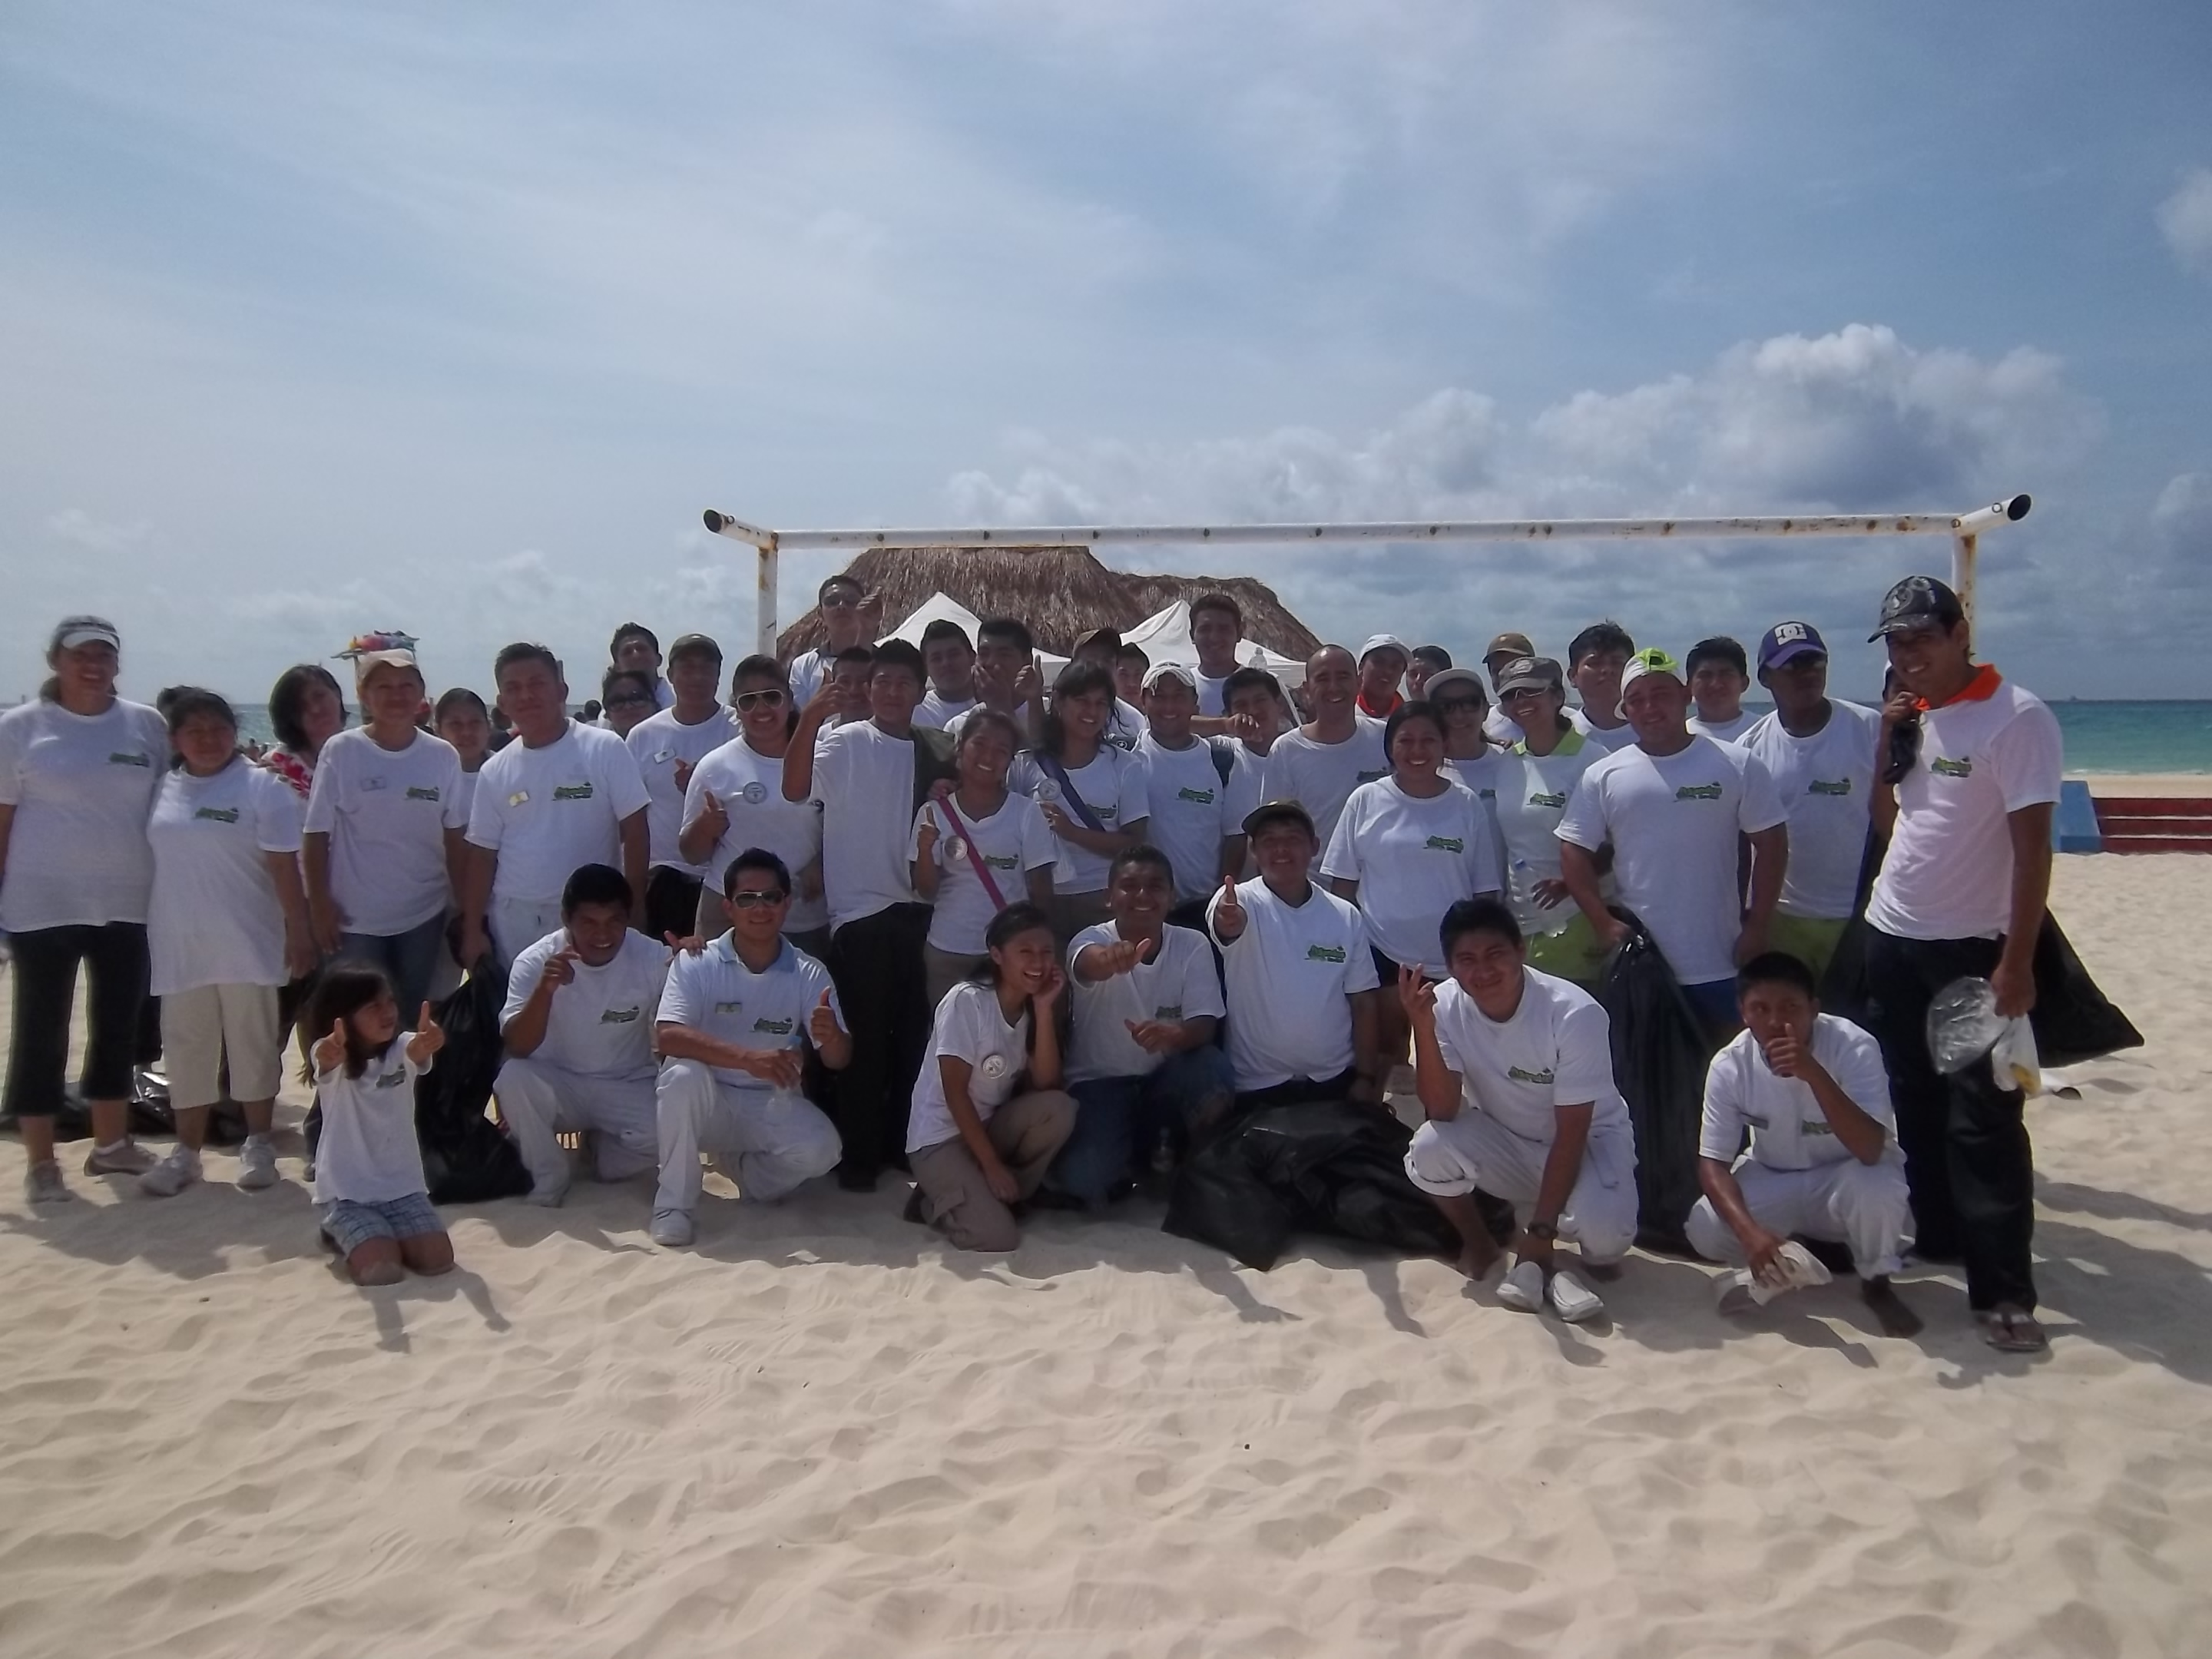 Sandos beach cleanup Playa del Carmen 4